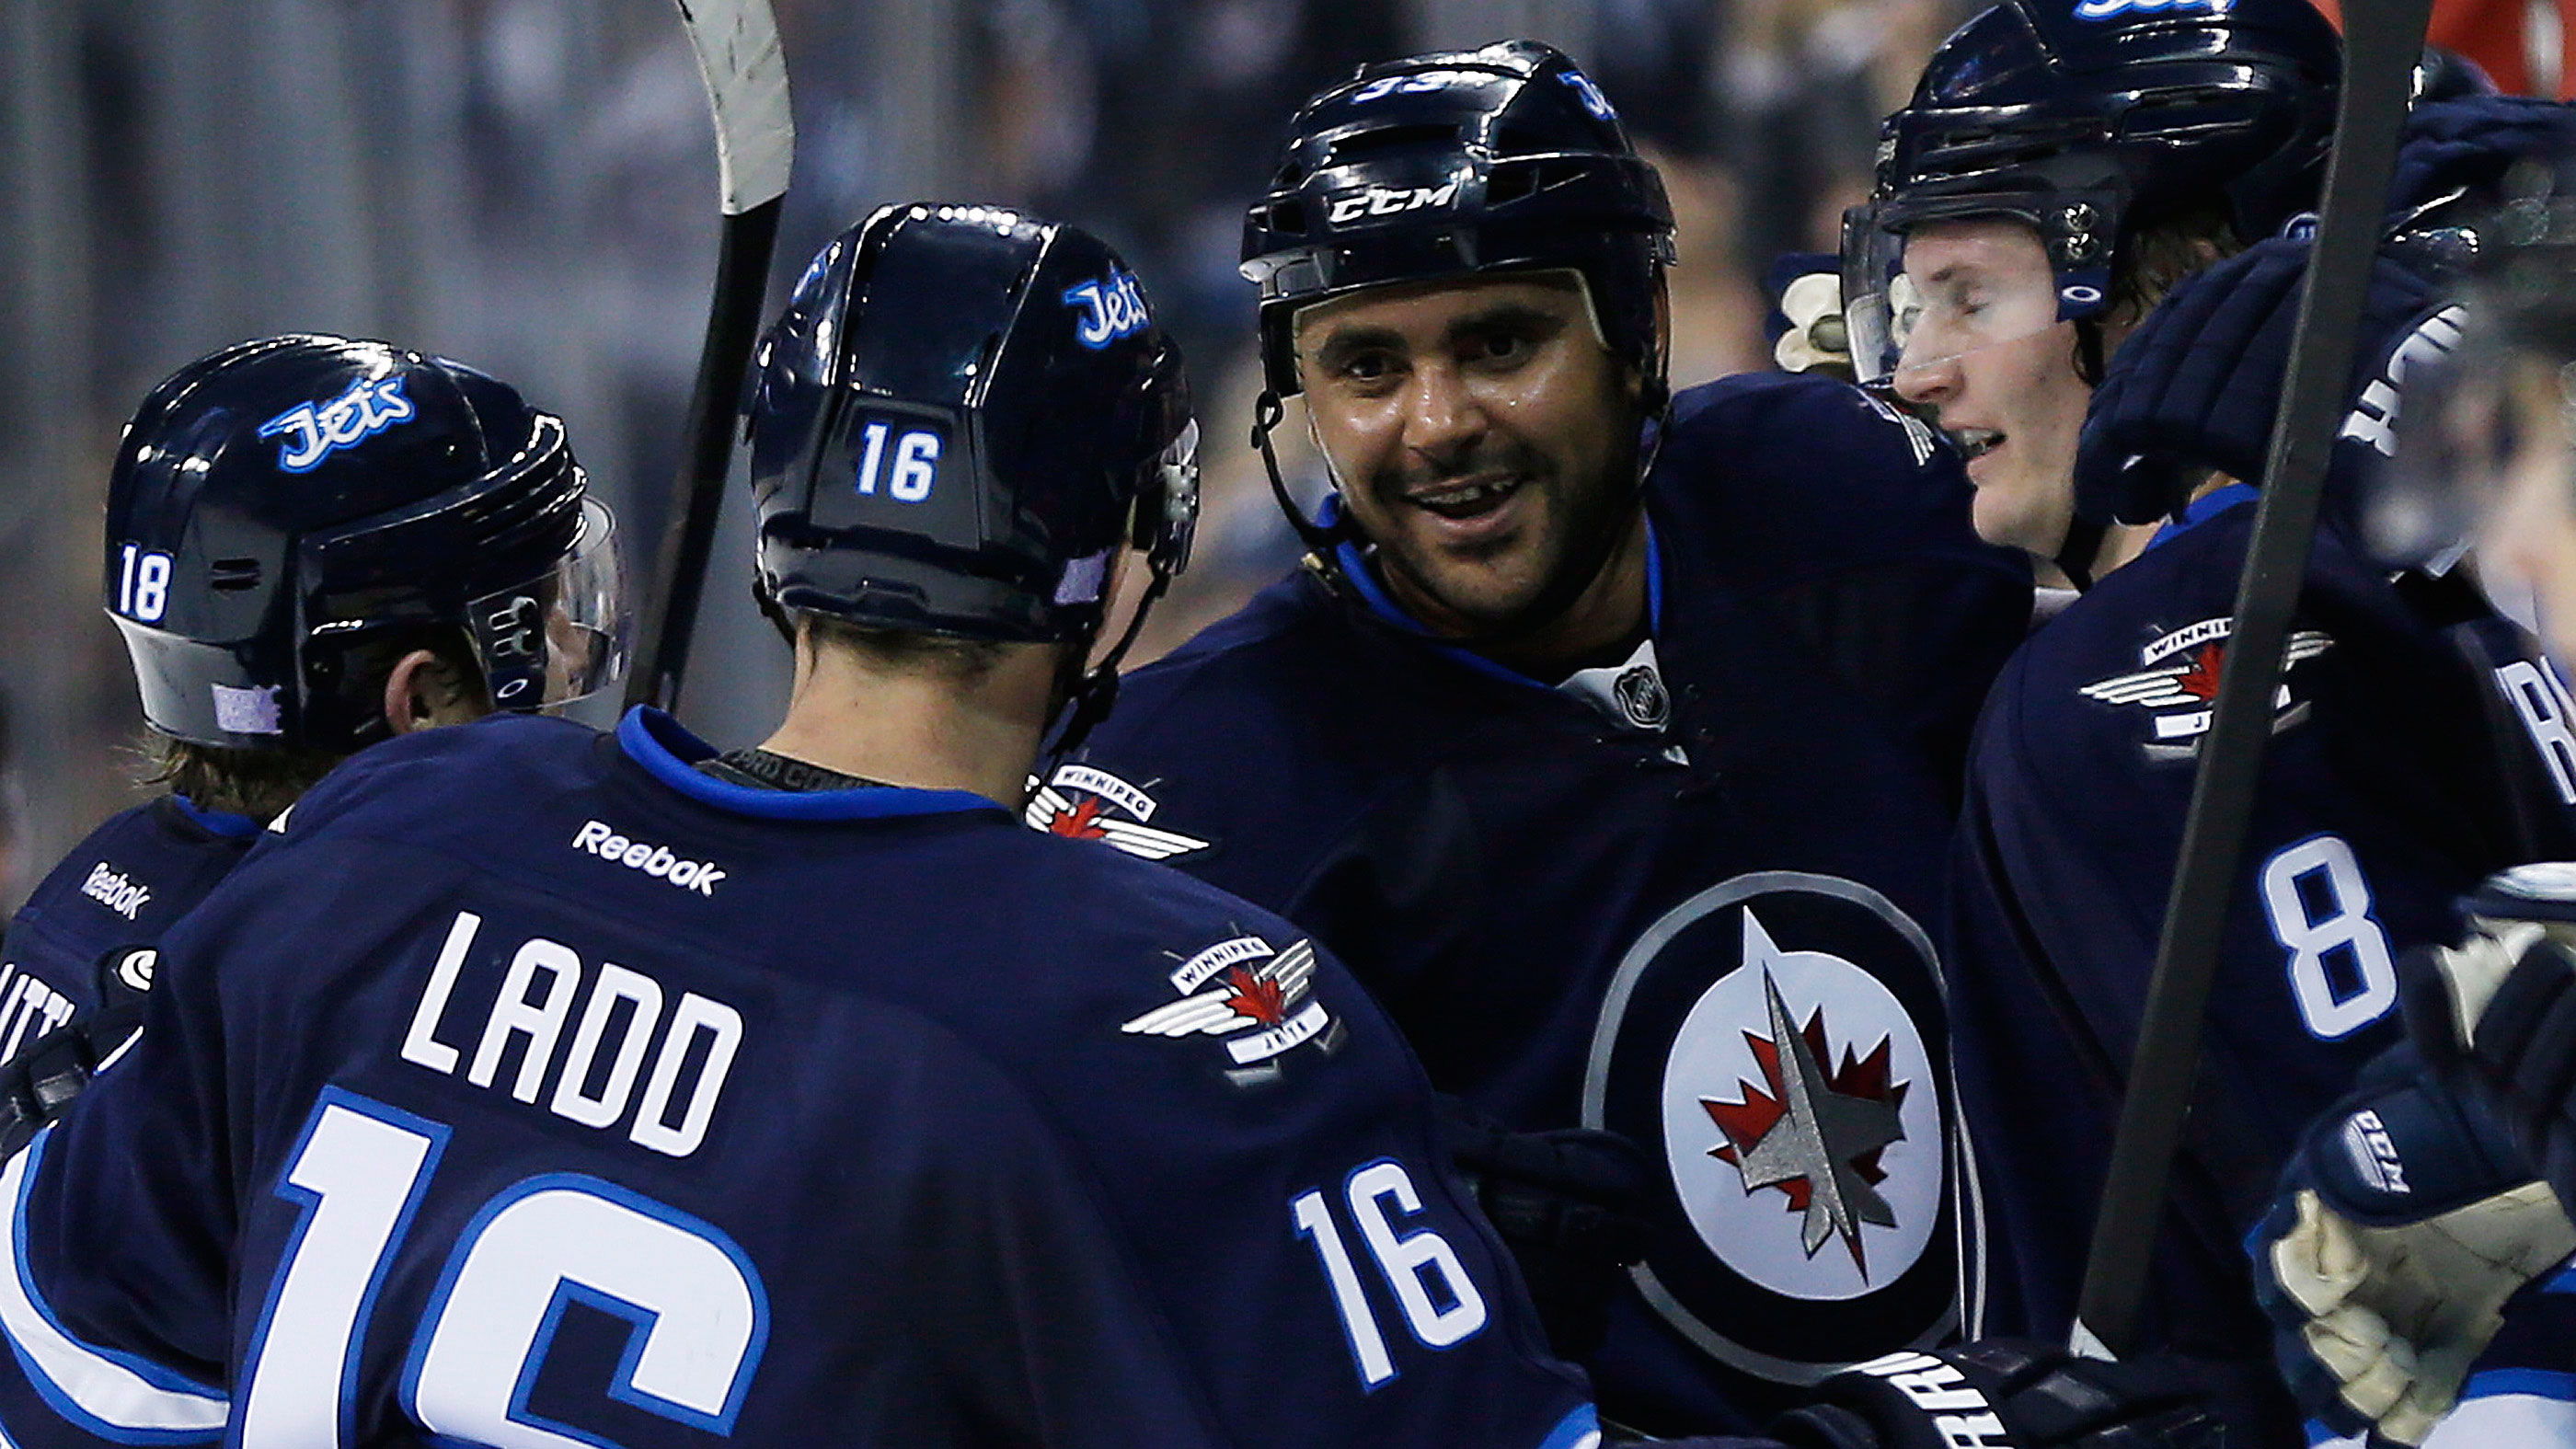 Winnipeg Jets' Andrew Ladd and Dustin Byfuglien celebrate a goal. (John Woods/CP)